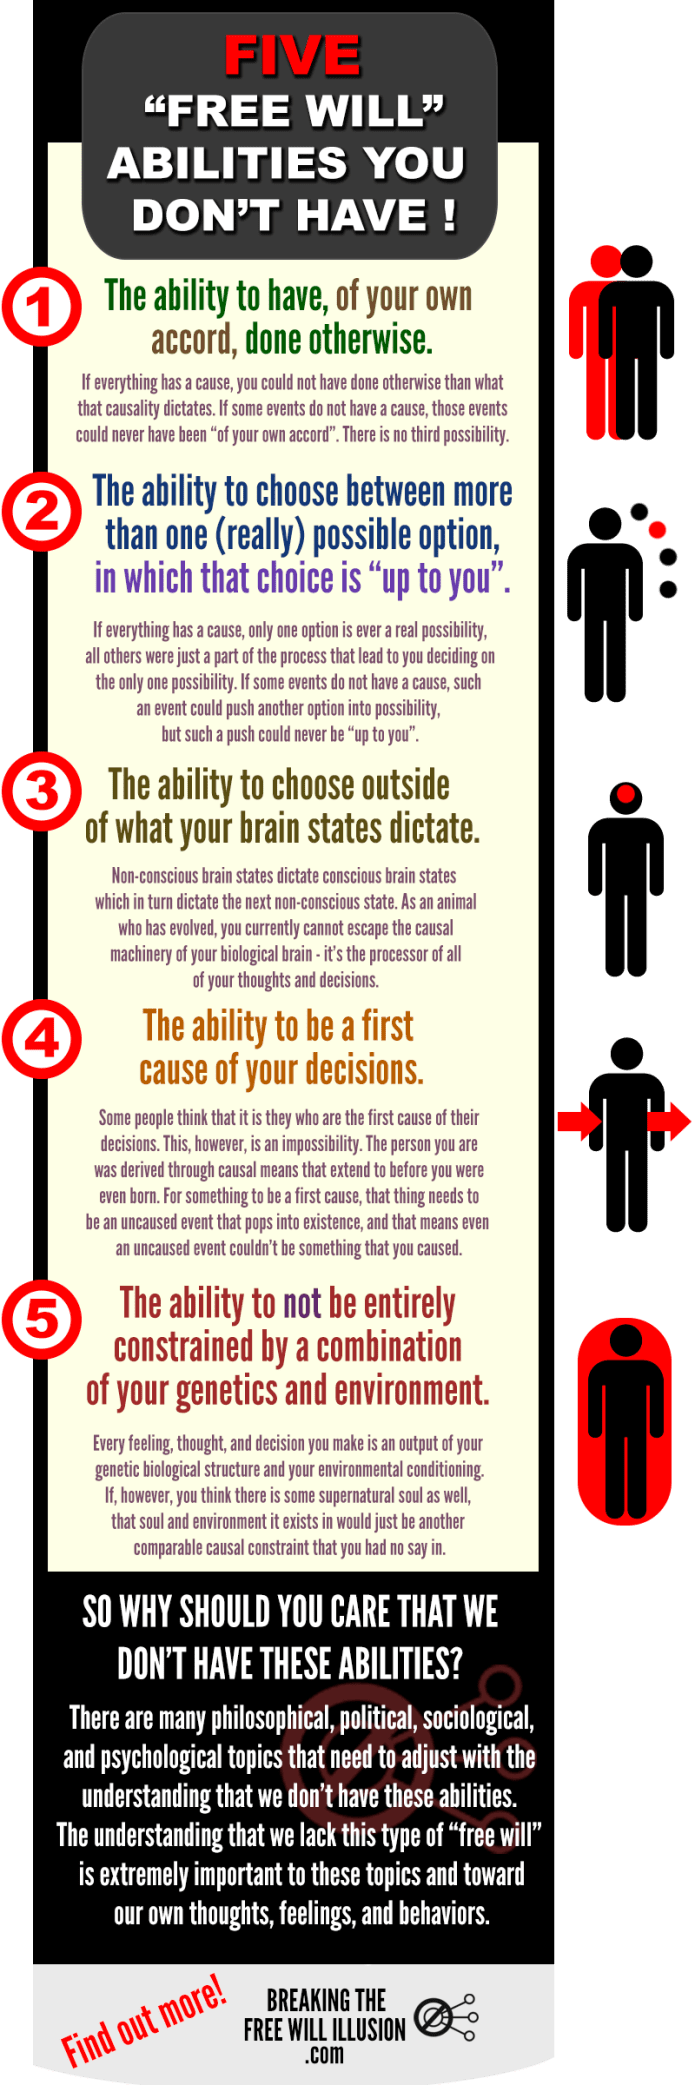 5-FREE-WILL-ABILITIES-YOU-DONT-HAVE